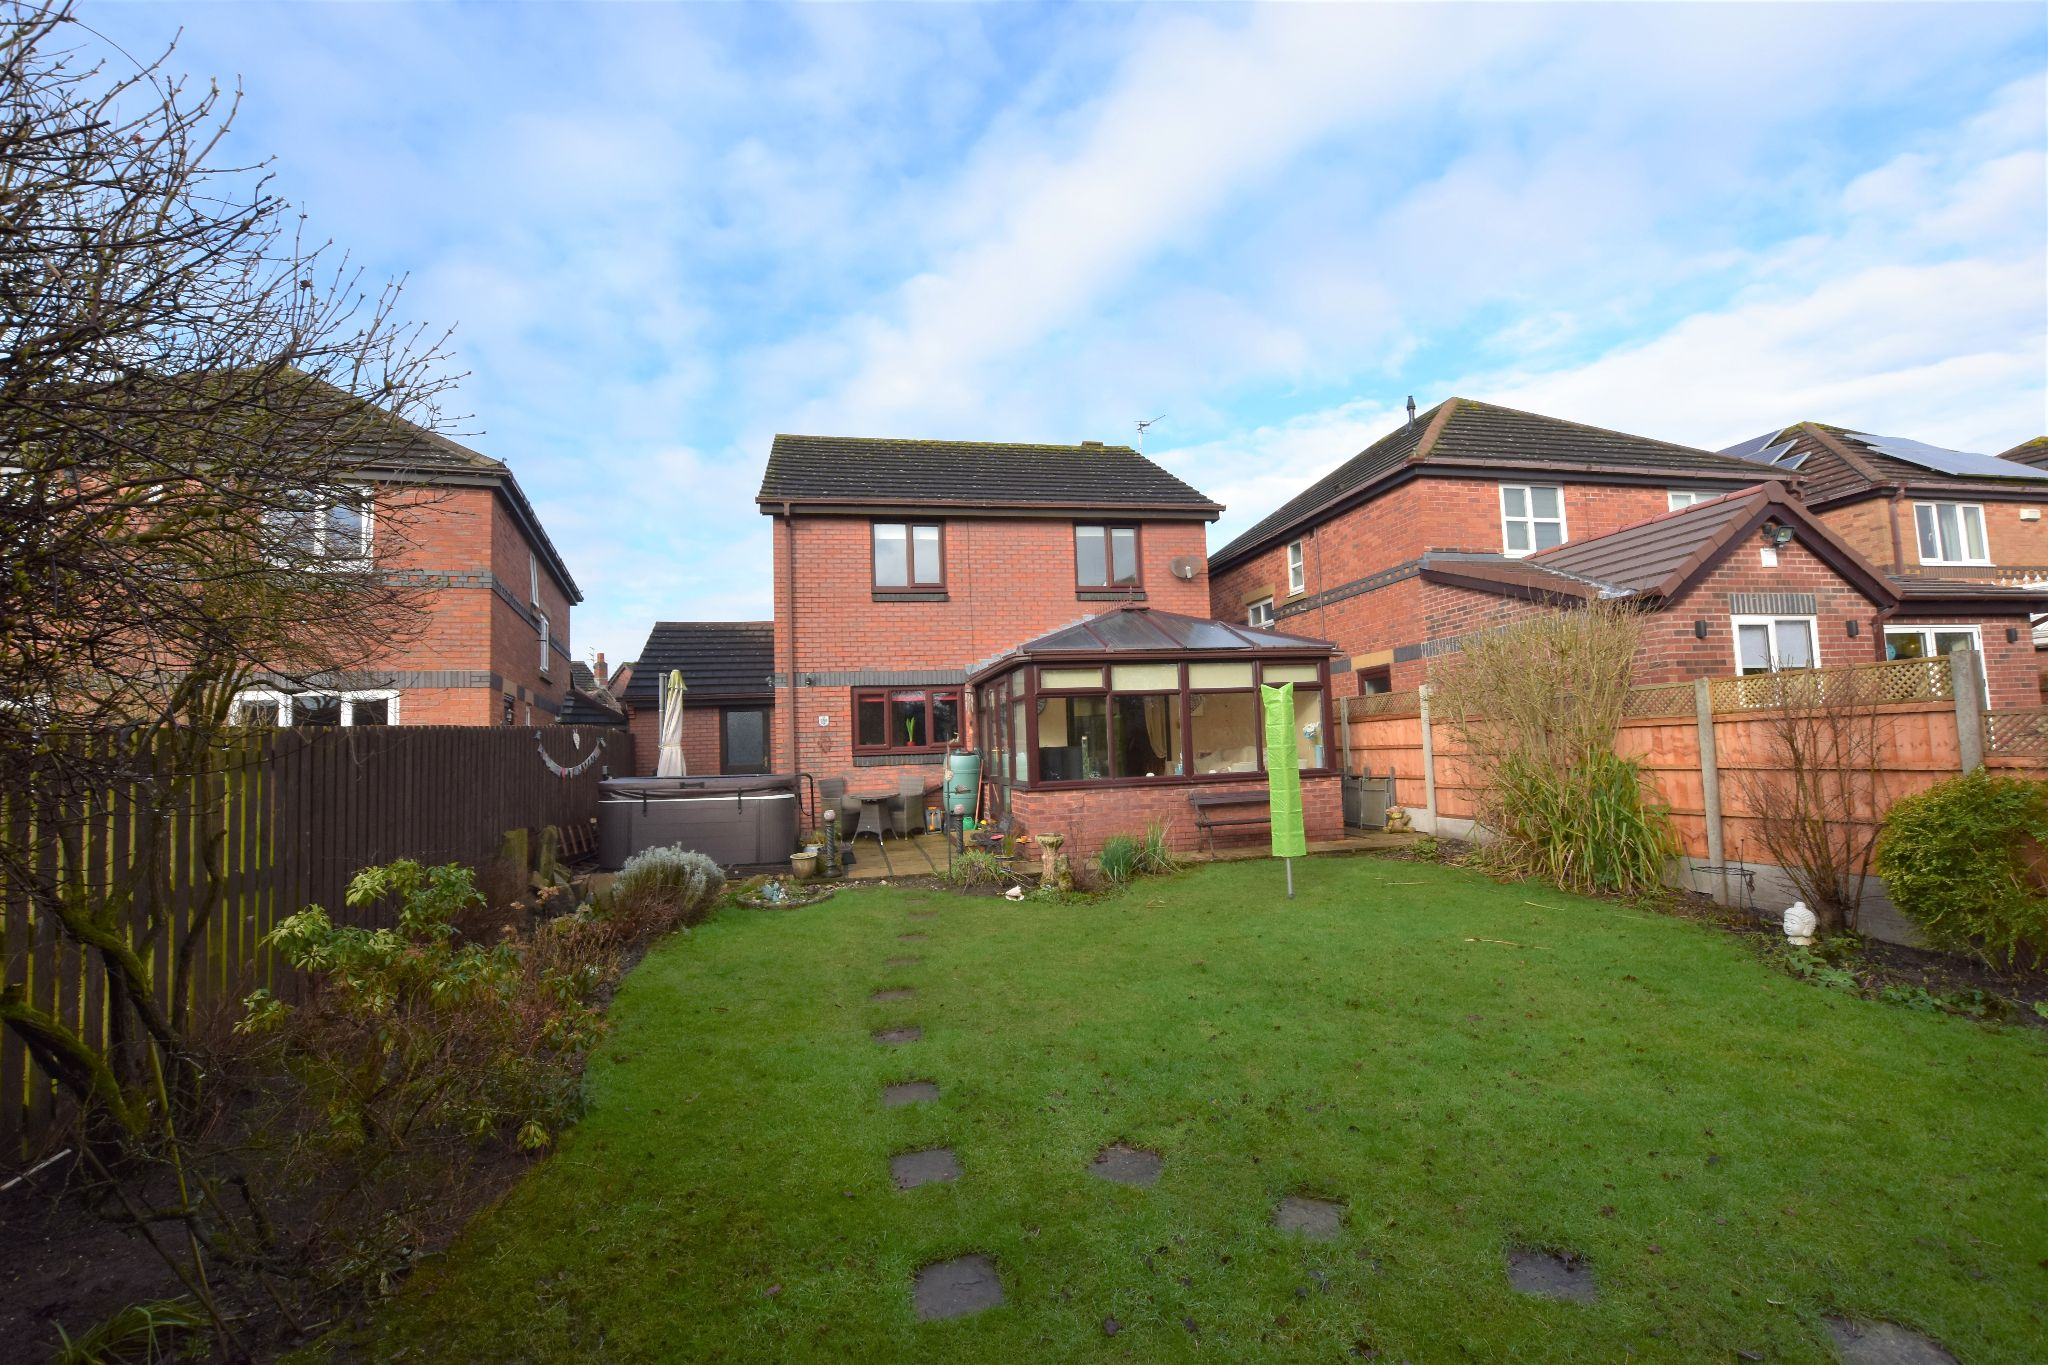 4 bedroom detached house Sold STC in Lytham St. Annes - Rear Garden